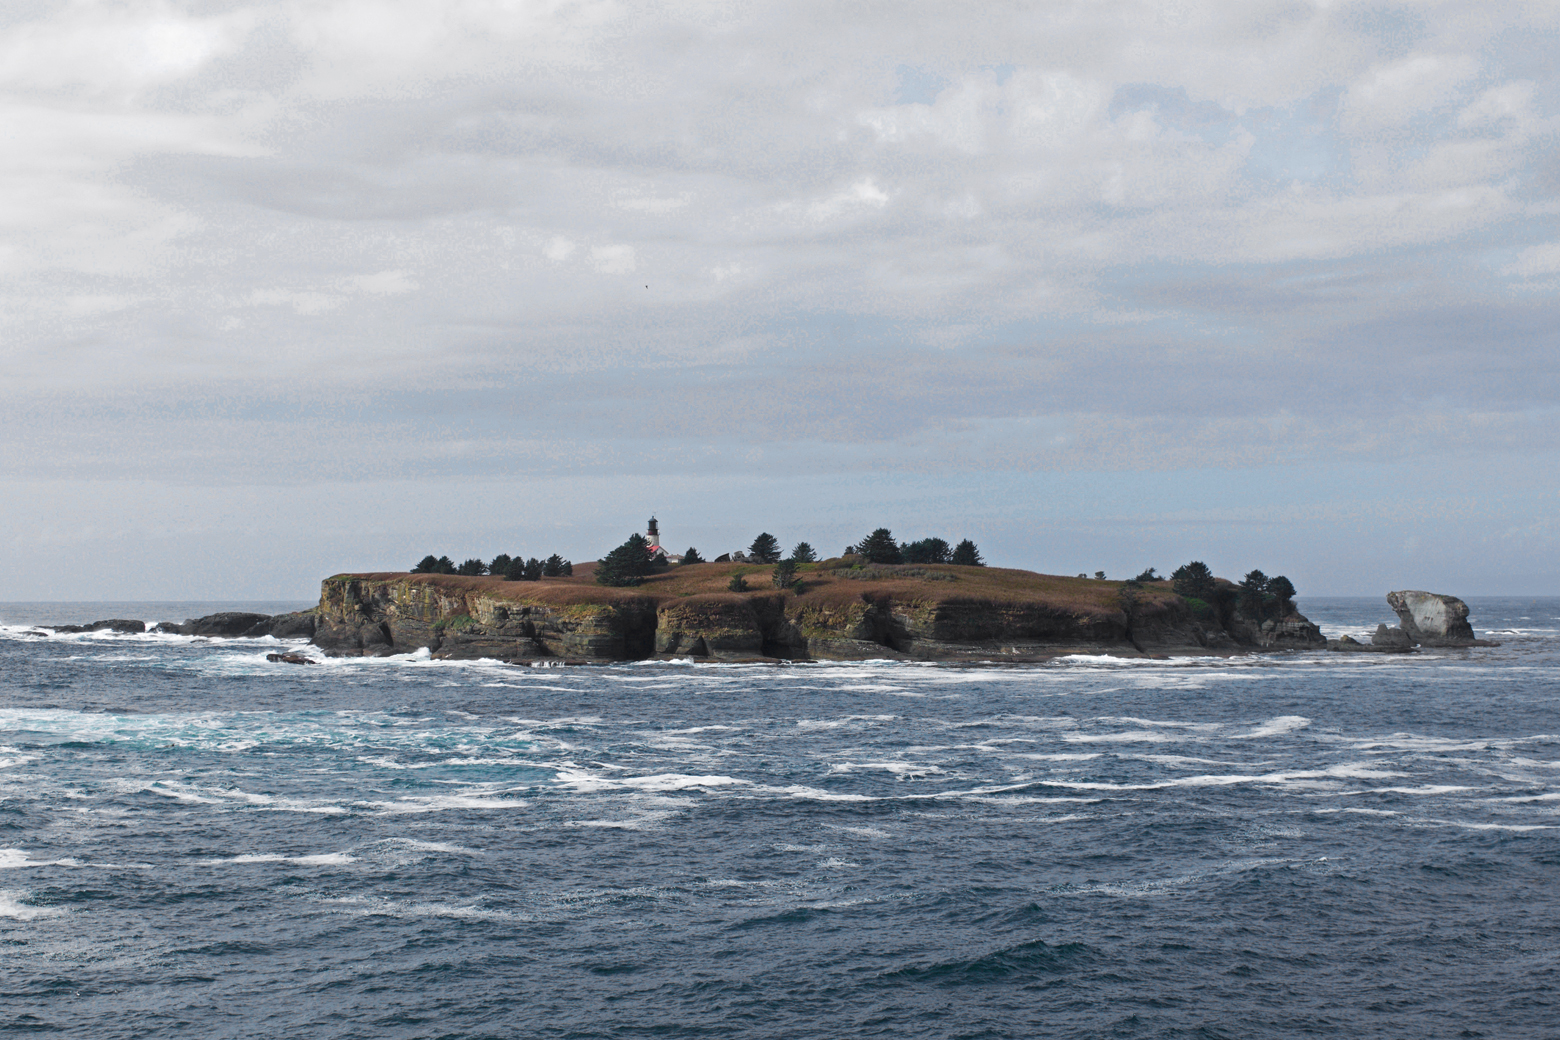 Tatoosh Island with a lighthouse as seen from the tip of Cape Flattery